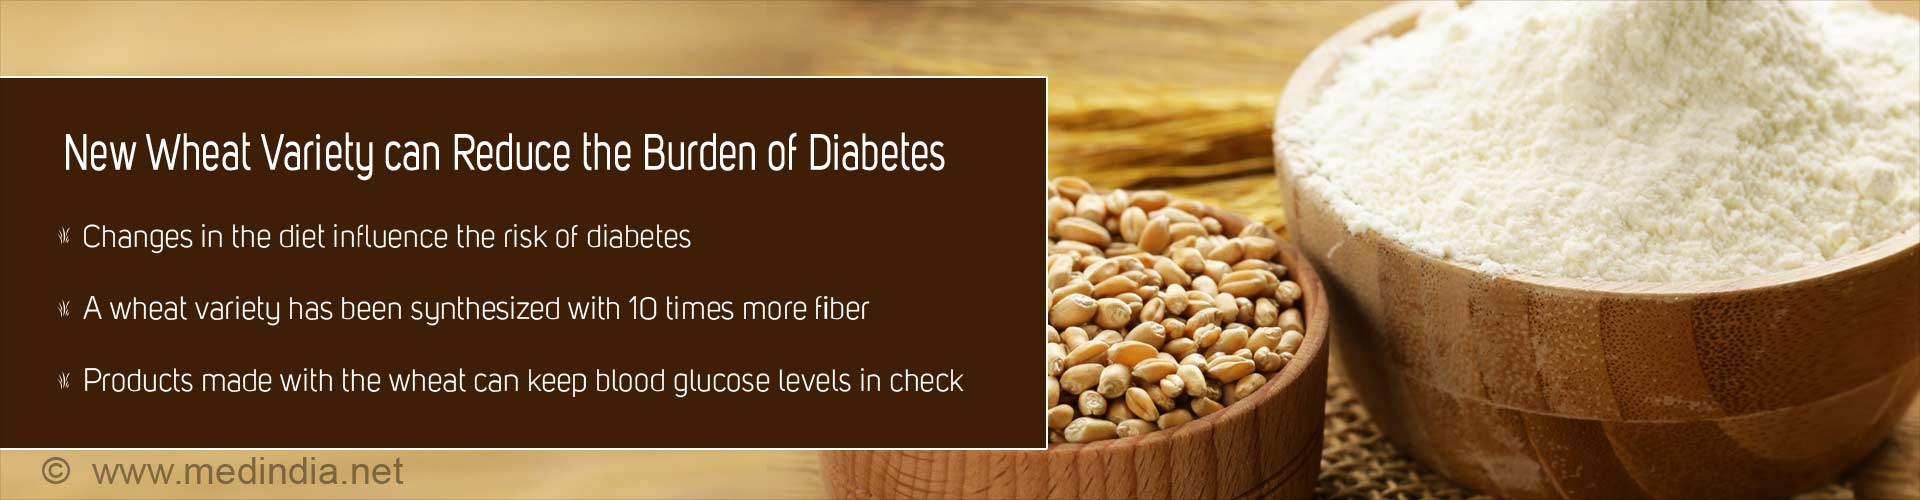 Wheat Variety With 10 Times More Fiber To Fight Diabetes, Bowel Cancer